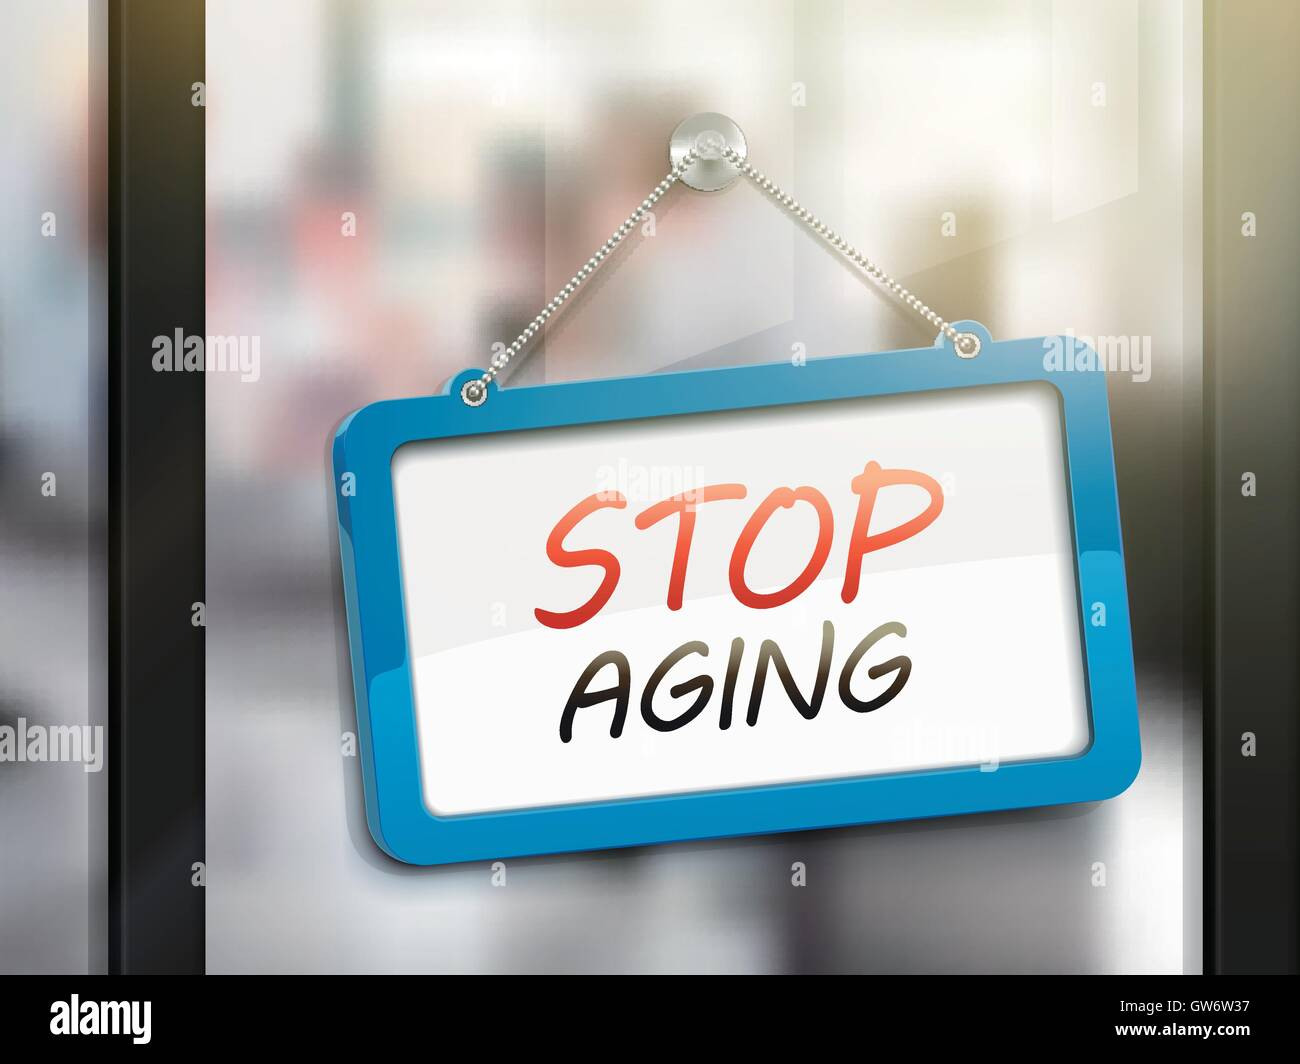 stop aging hanging sign, 3D illustration isolated on office glass door - Stock Vector